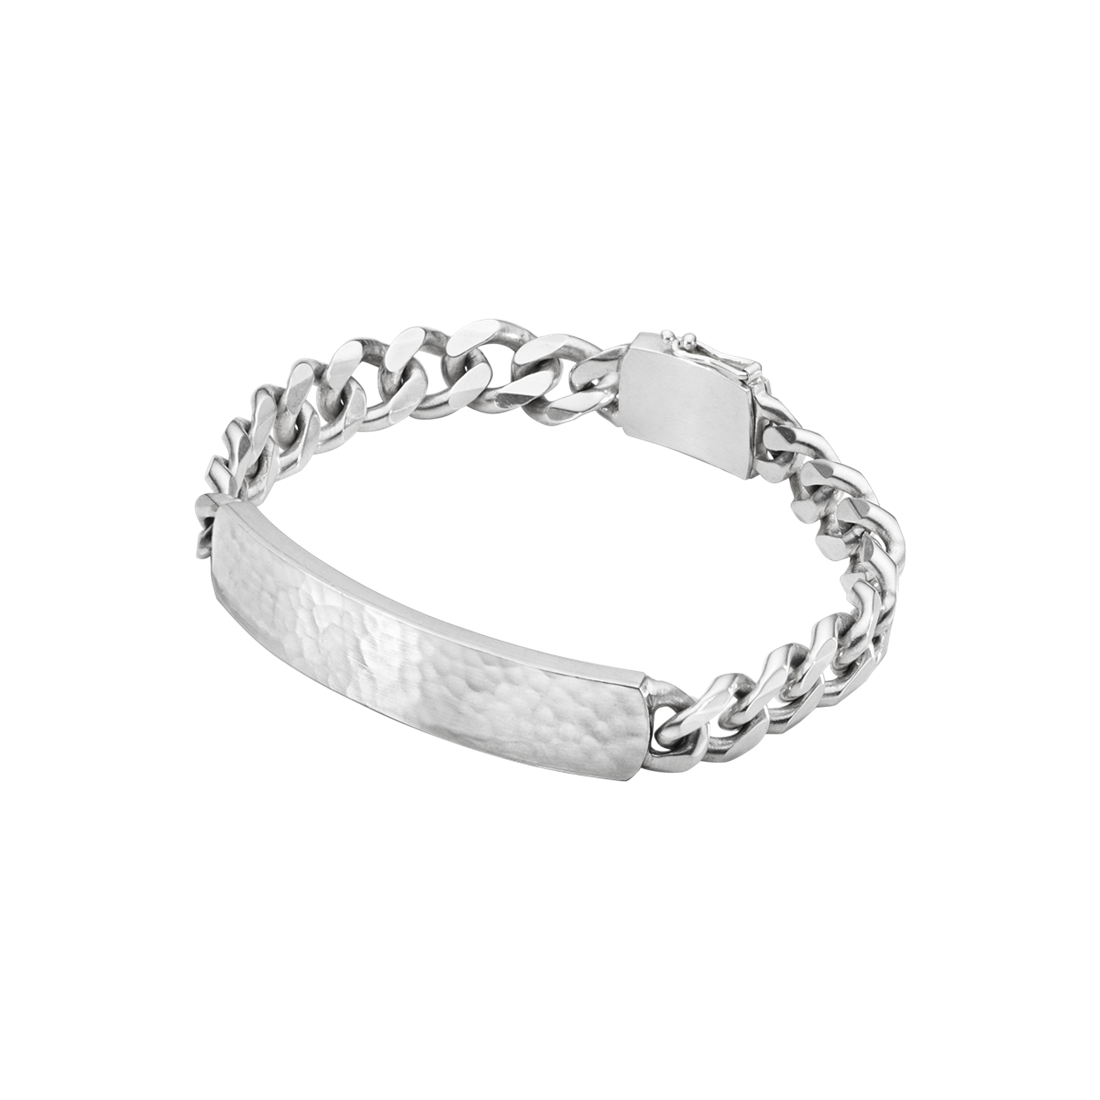 Drawing accessory bangle. Georg jensen smithy sterling